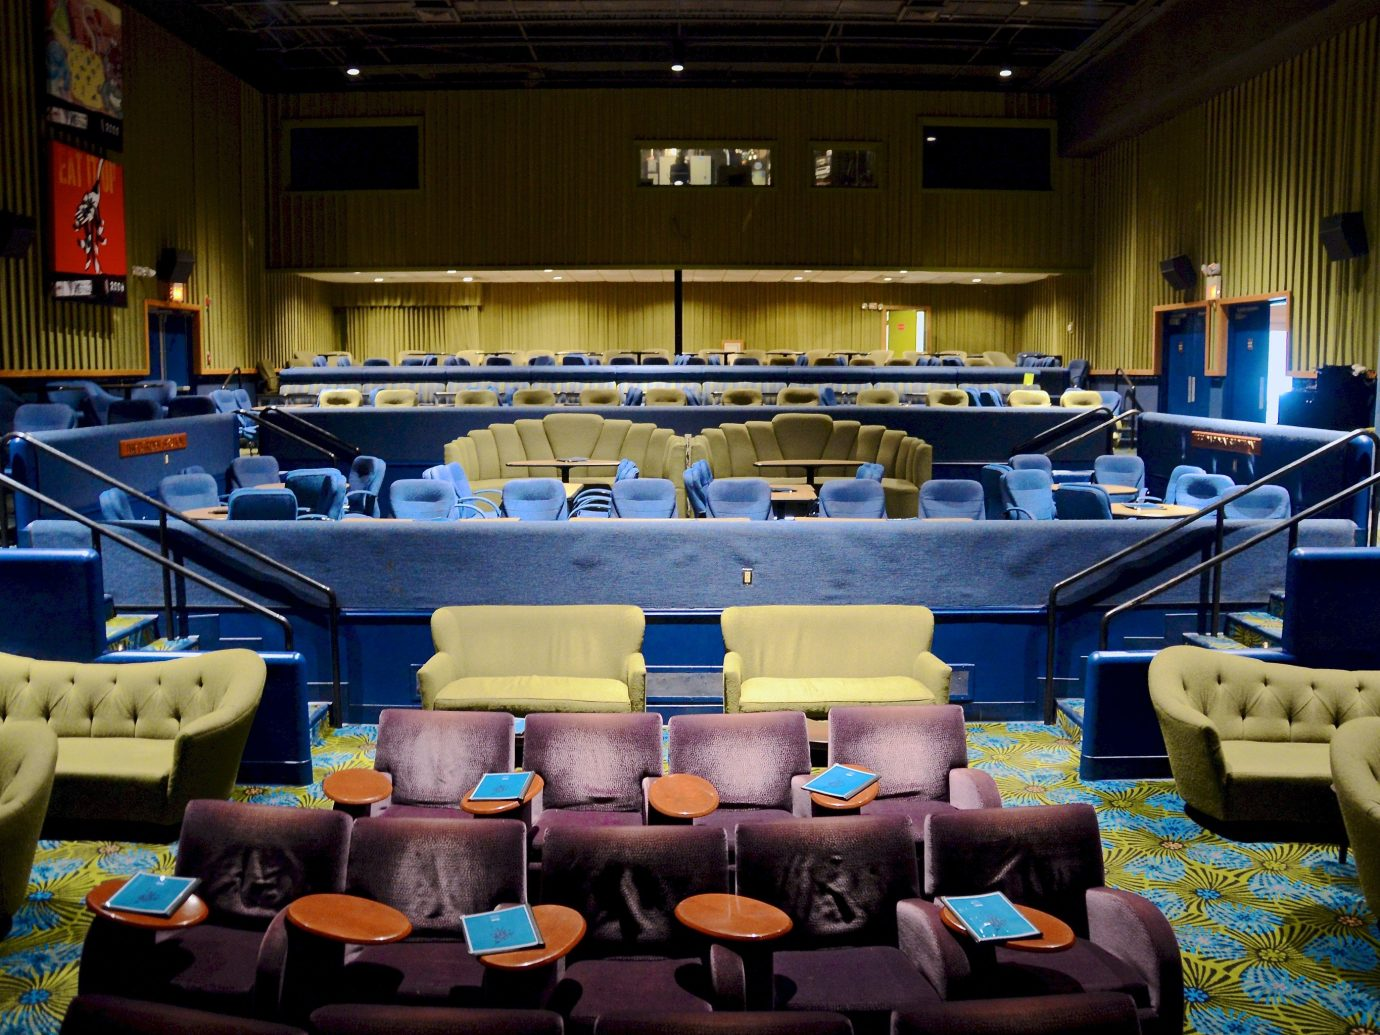 Arts + Culture Trip Ideas indoor auditorium room convention function hall stage conference hall academic conference theatre meal convention center meeting furniture several